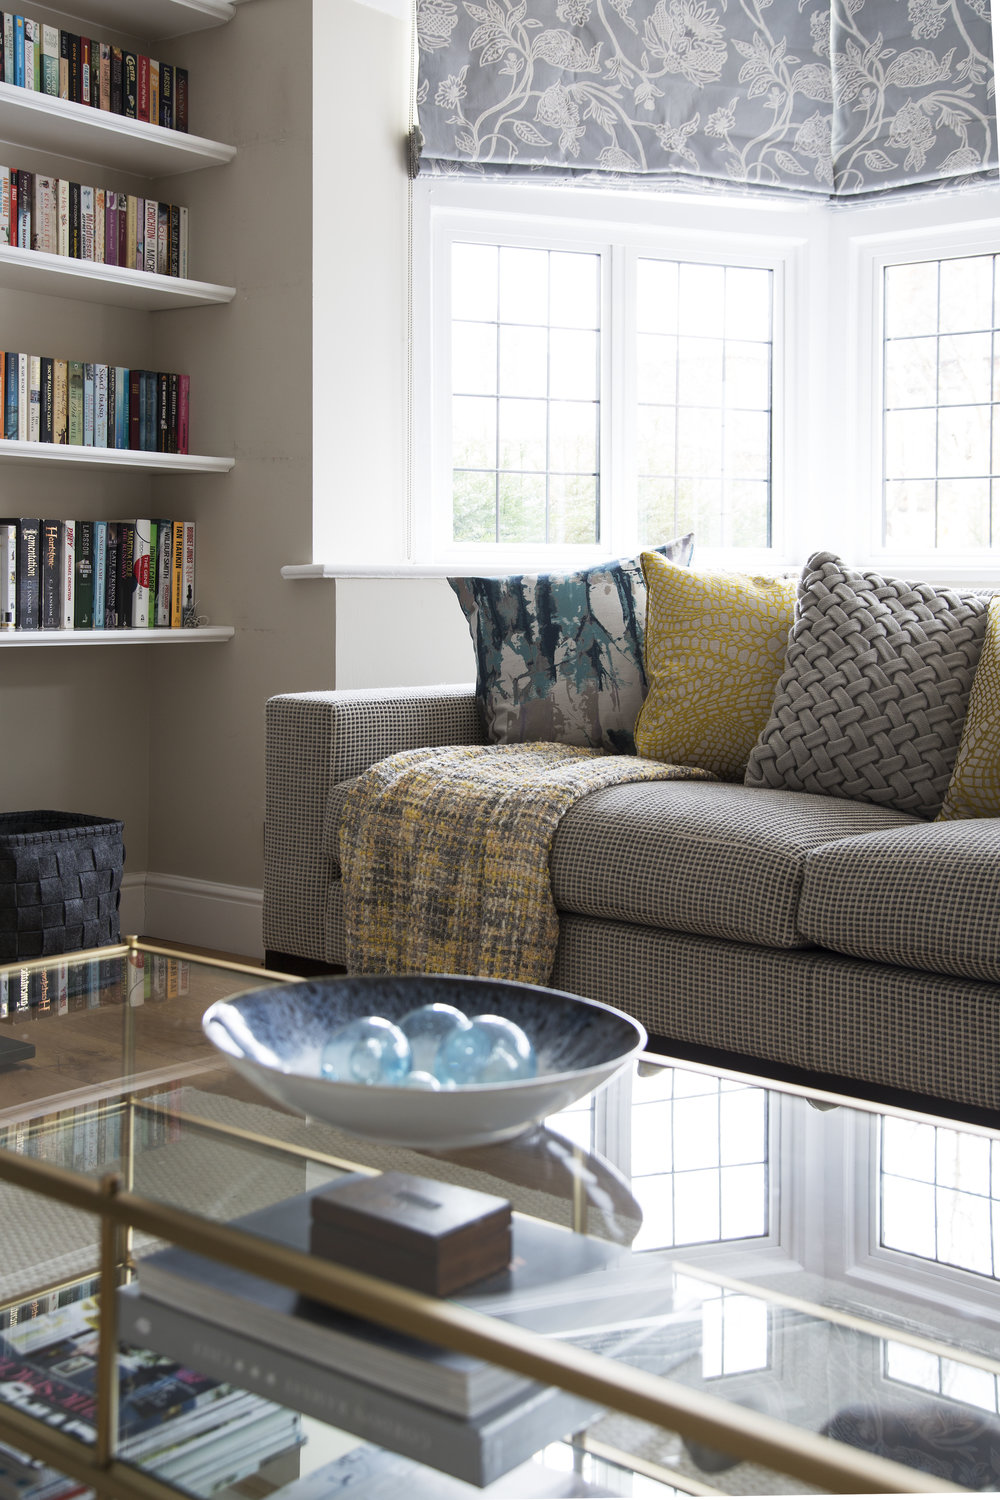 A modern brass coffee table and bespoke roman blinds work well with period features in this arts and crafts home in Sevenoaks Kent - Interior Design by Phoebe Oldrey of Smartstyle Interiors